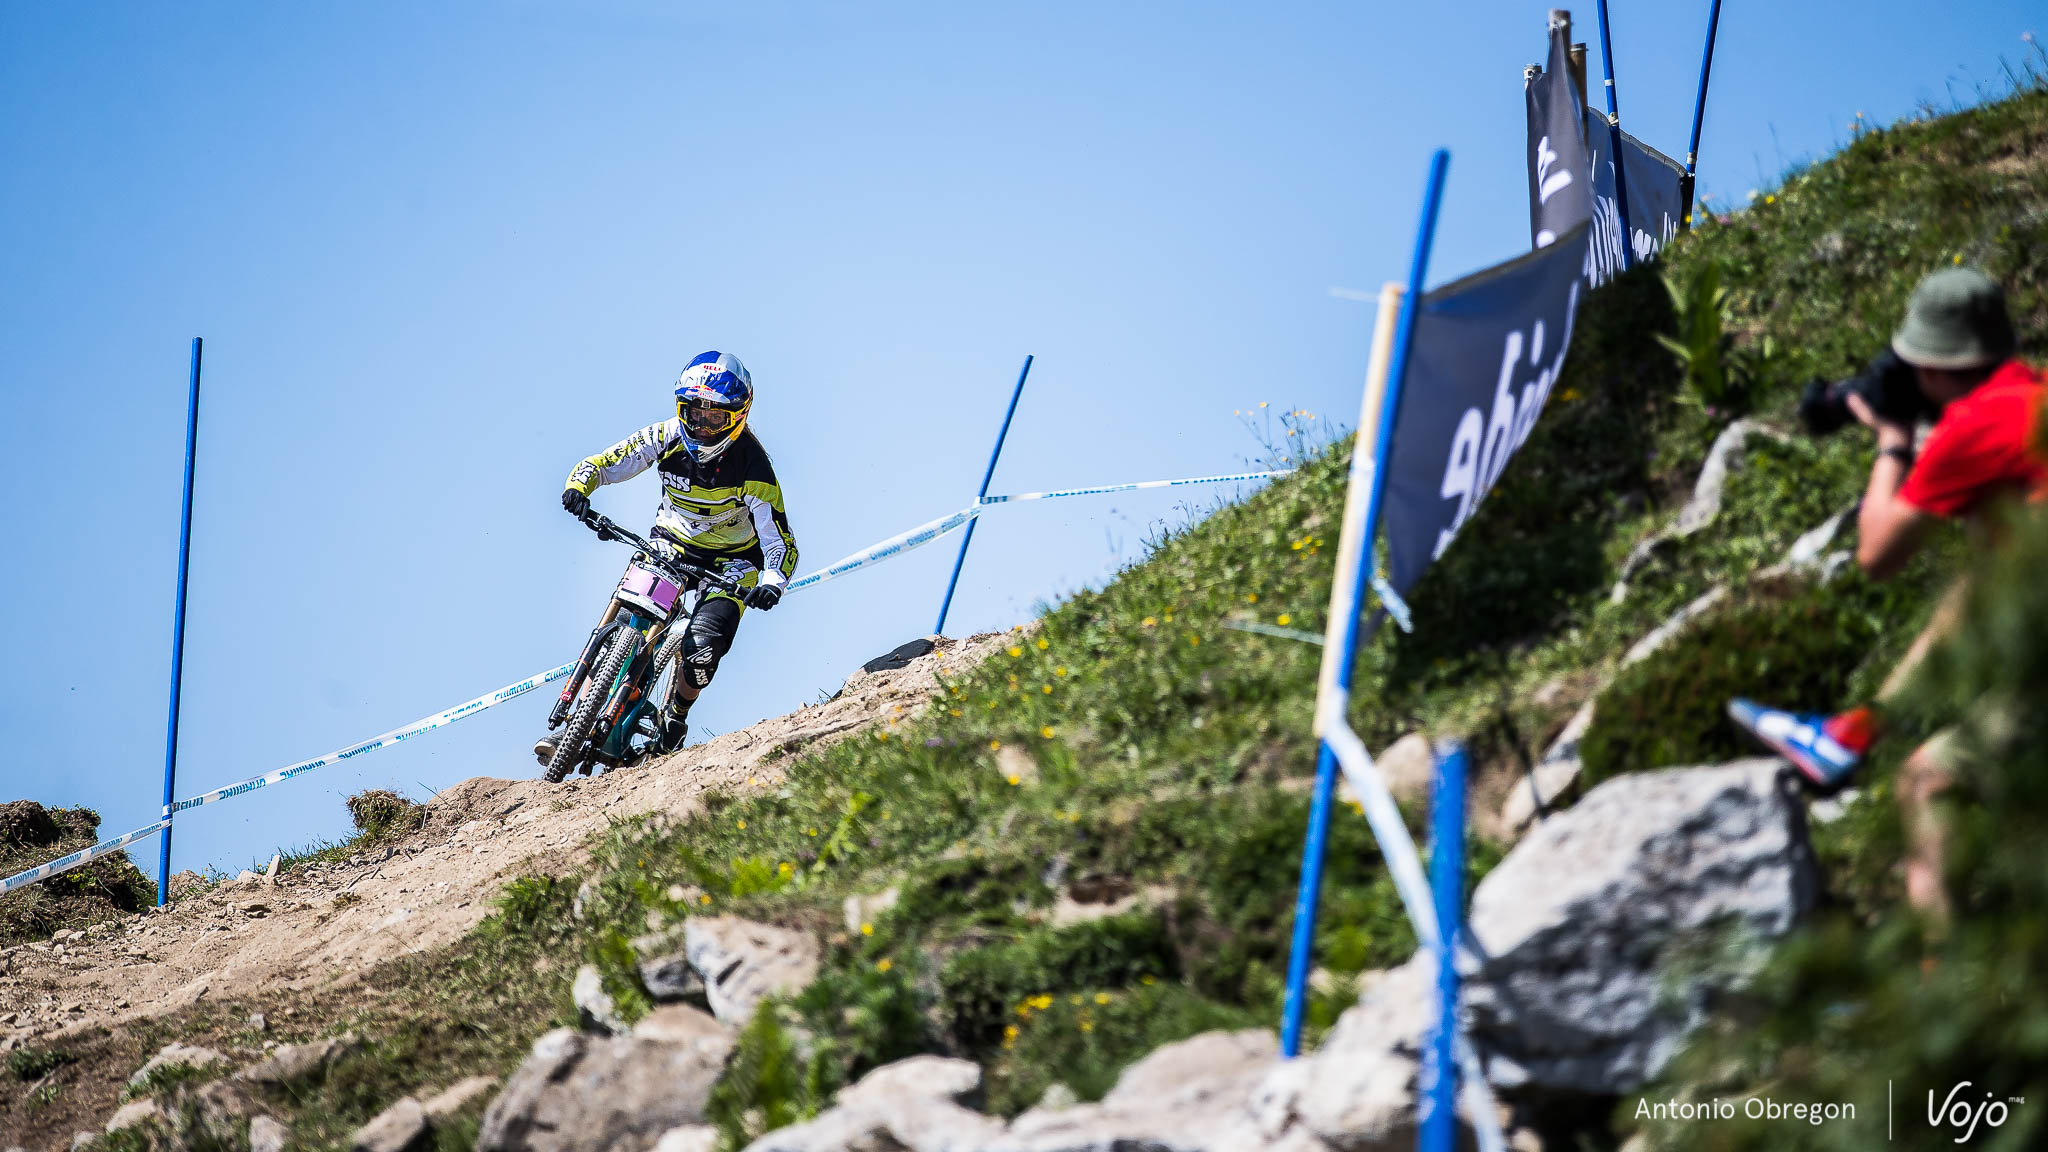 Lenzerheide_UCI_World_Cup_DH_2015_final_Porfoli_Women_Copyright_Antonio_Obregon_VojoMag-8